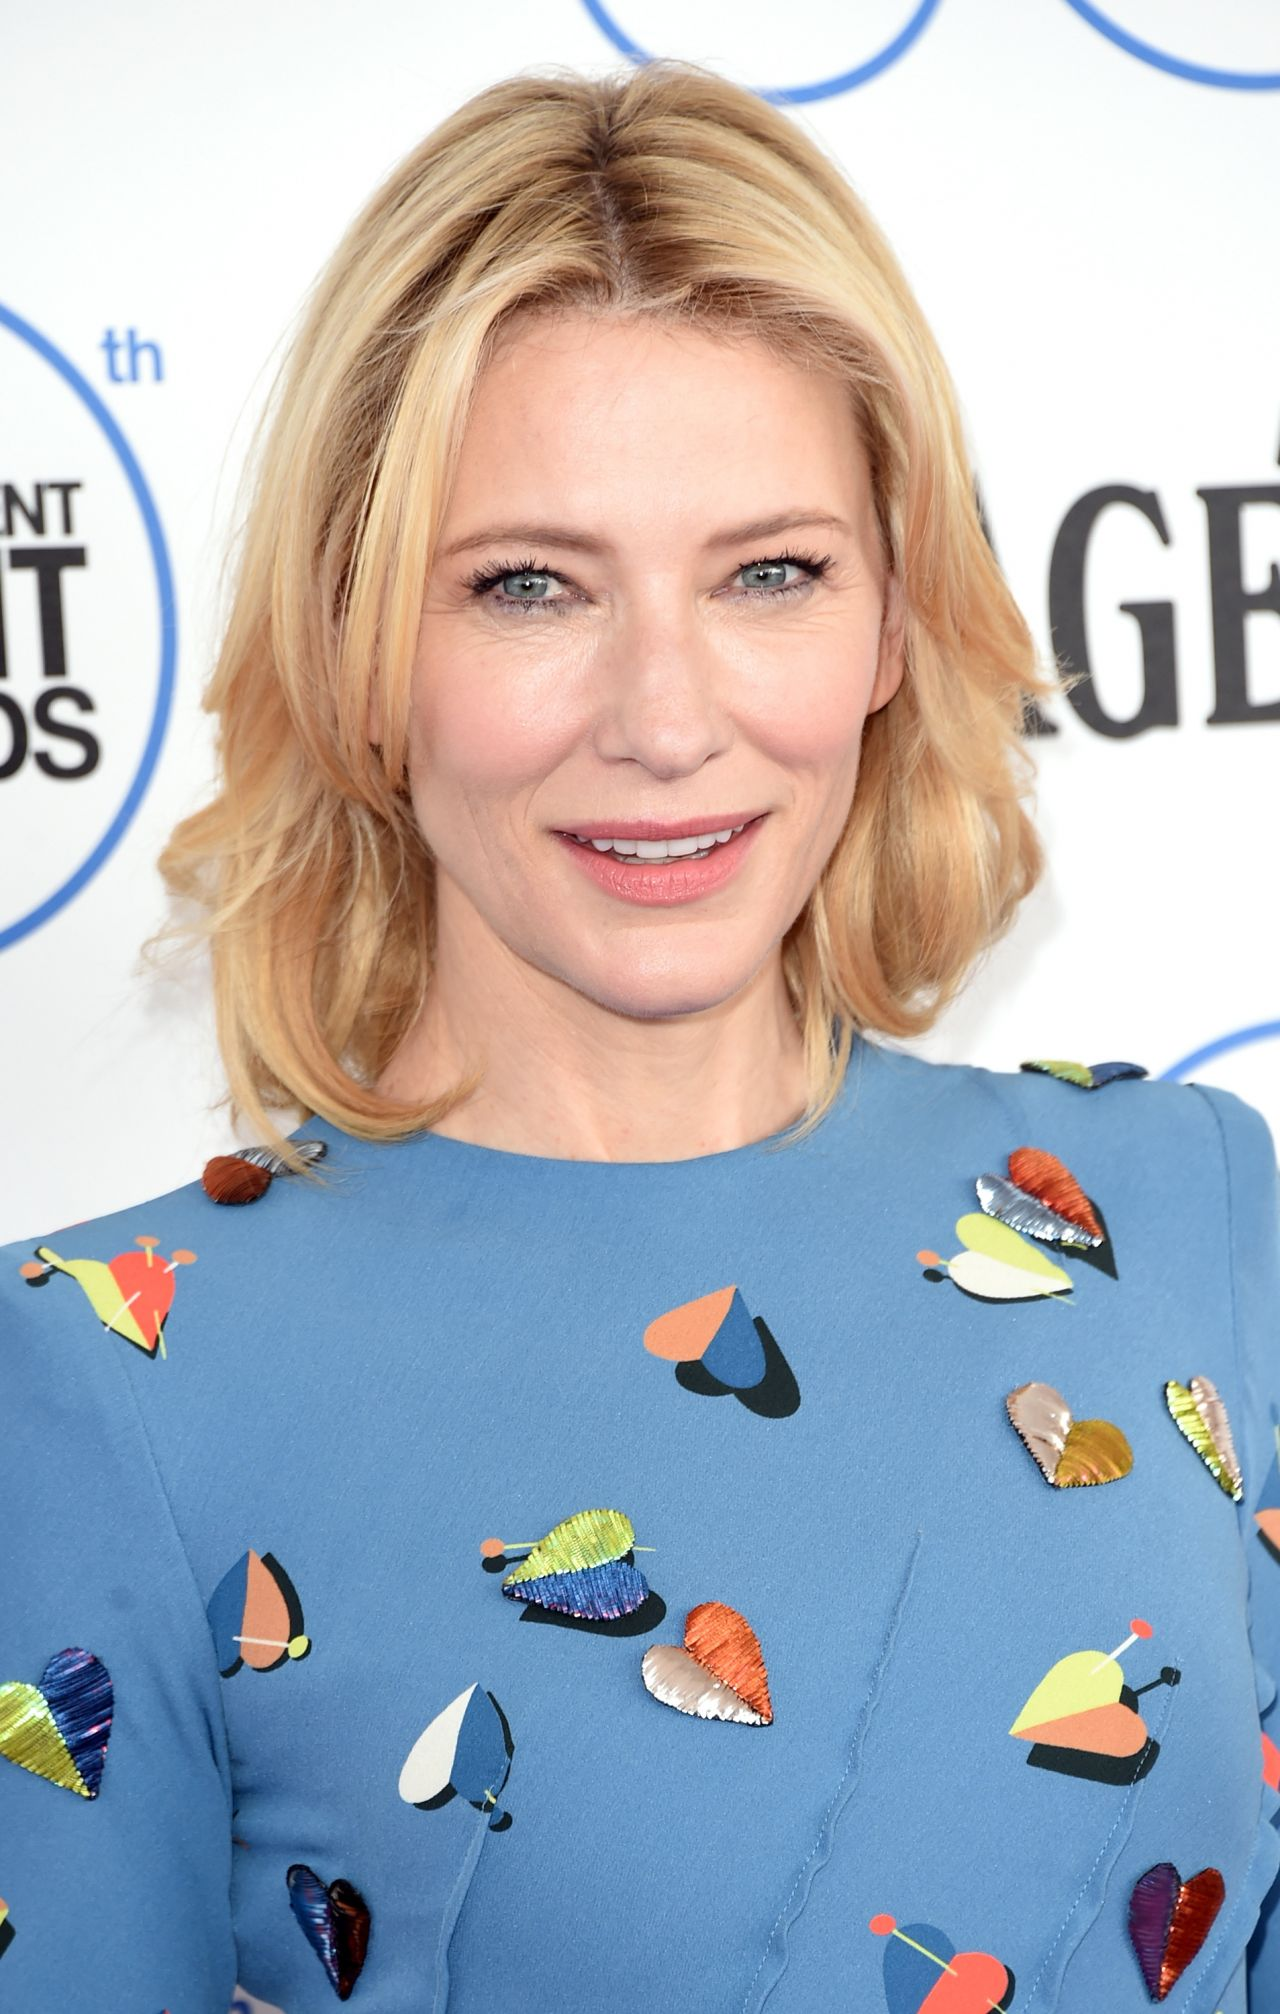 Cate Blanchett - 2015 Film Independent Spirit Awards in Santa Monica